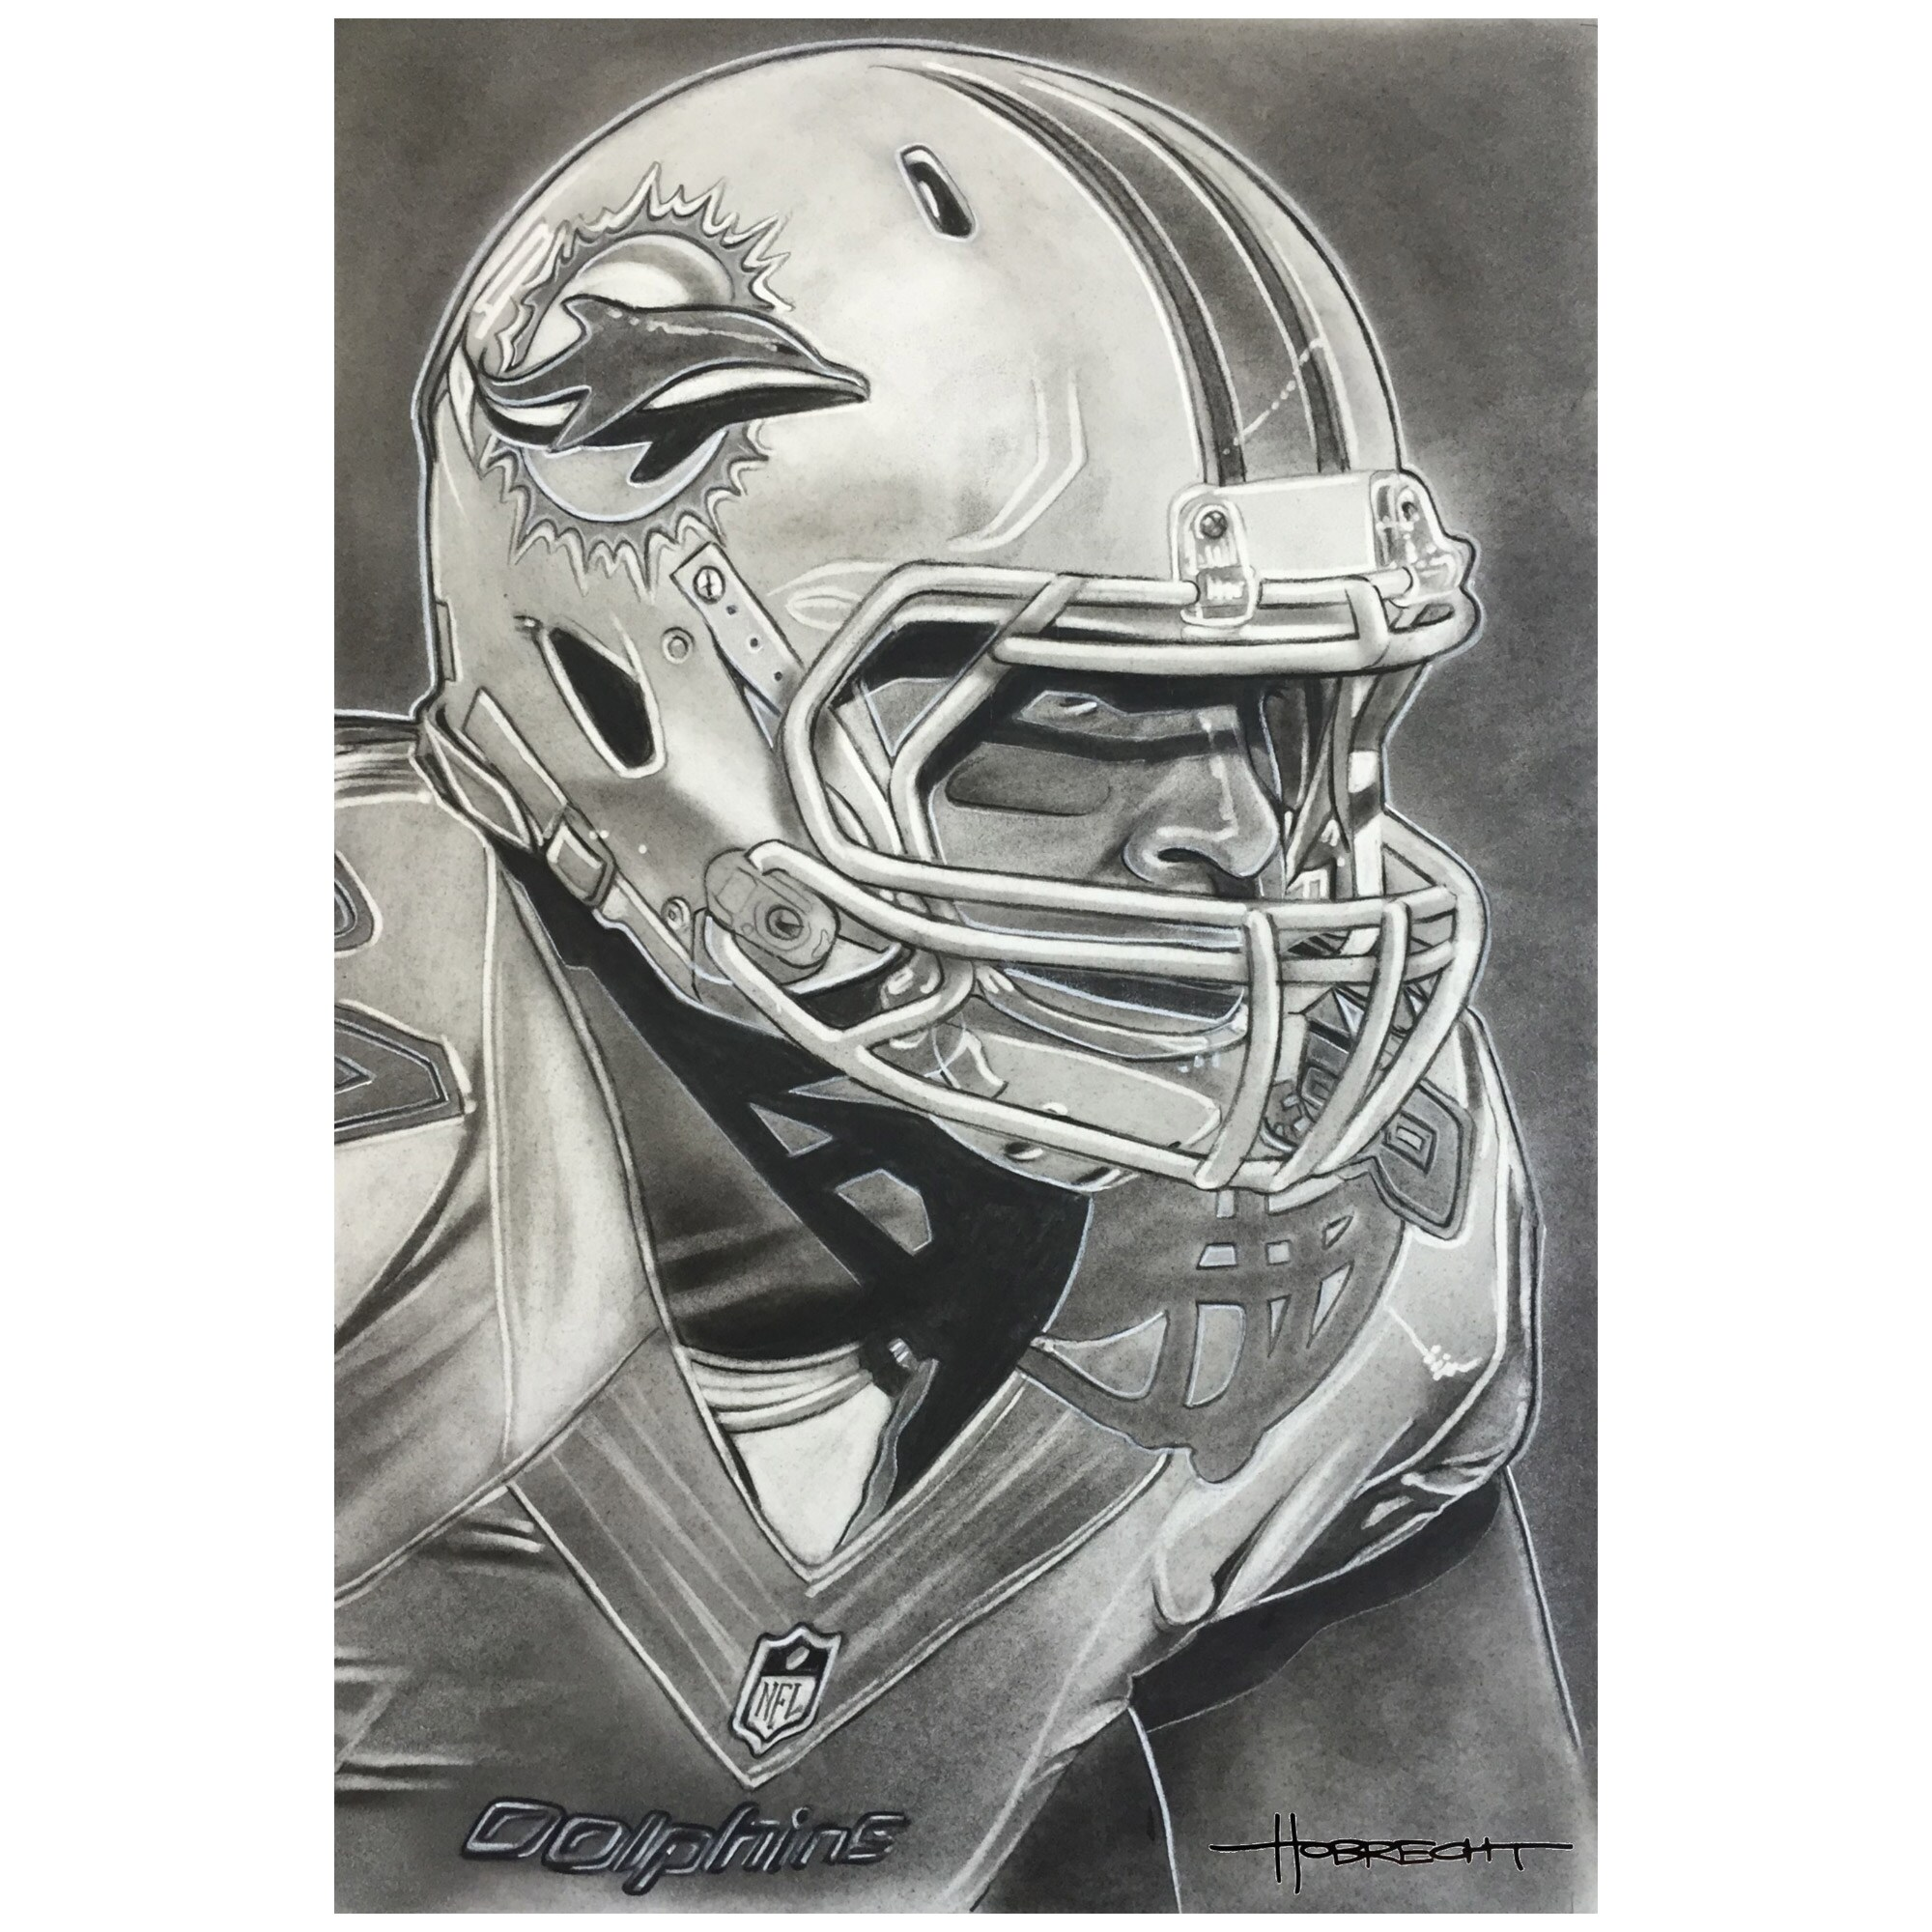 "Miami Dolphins Deacon Jones Foundation 14"" x 9"" Helmet Series Fine Art Giclée Canvas"